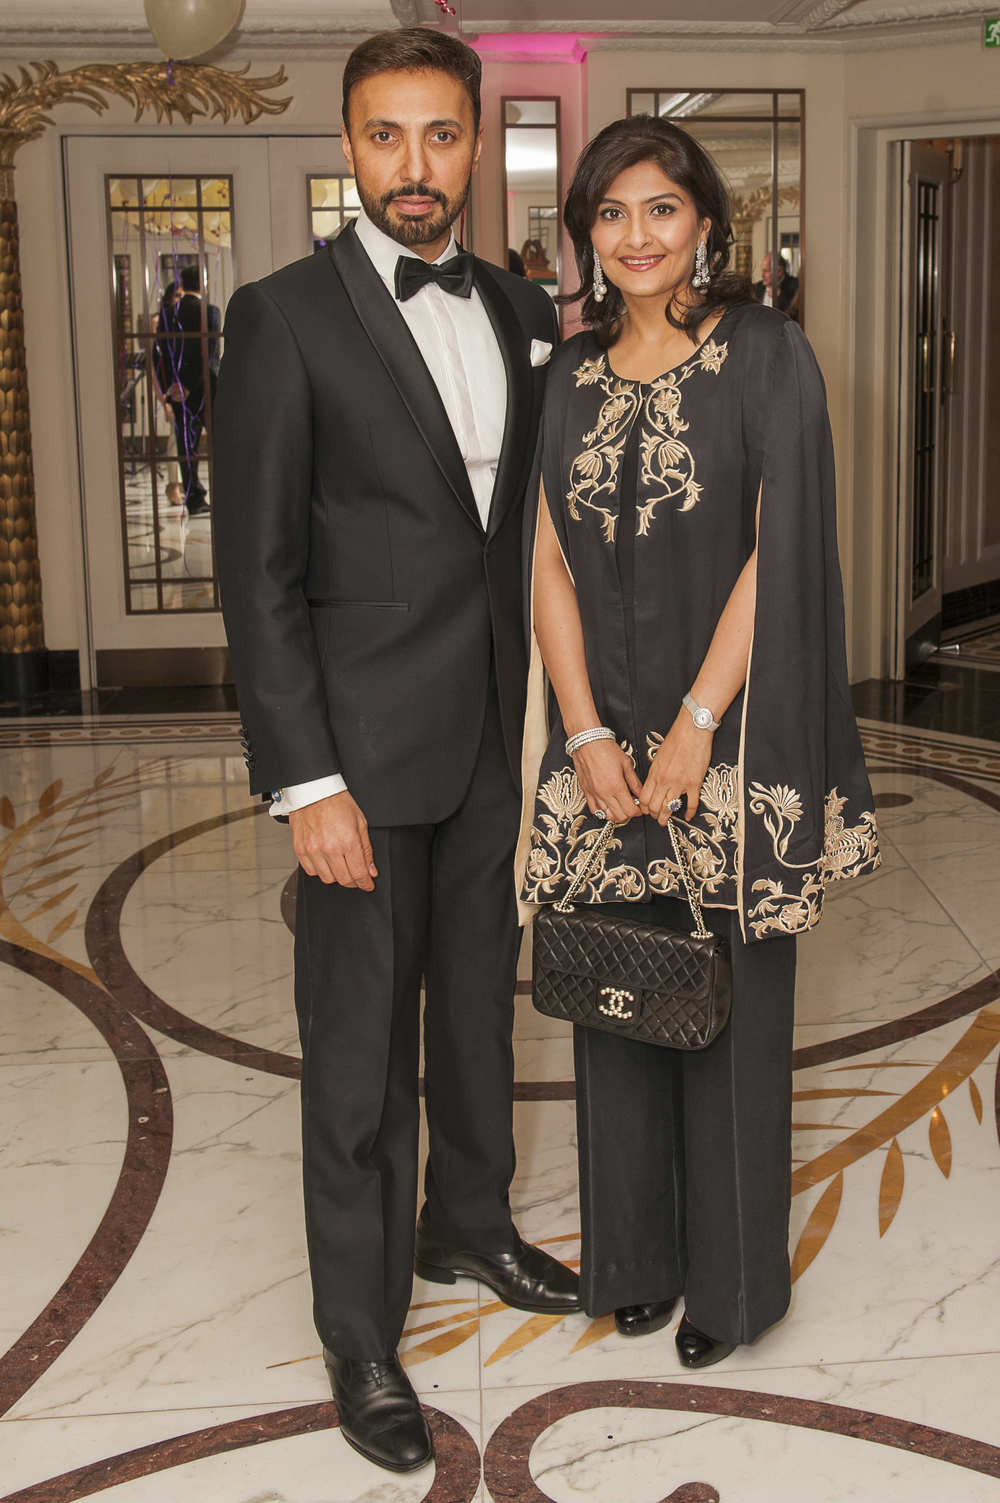 Mansoor Ul Haq and Fabiha.jpg